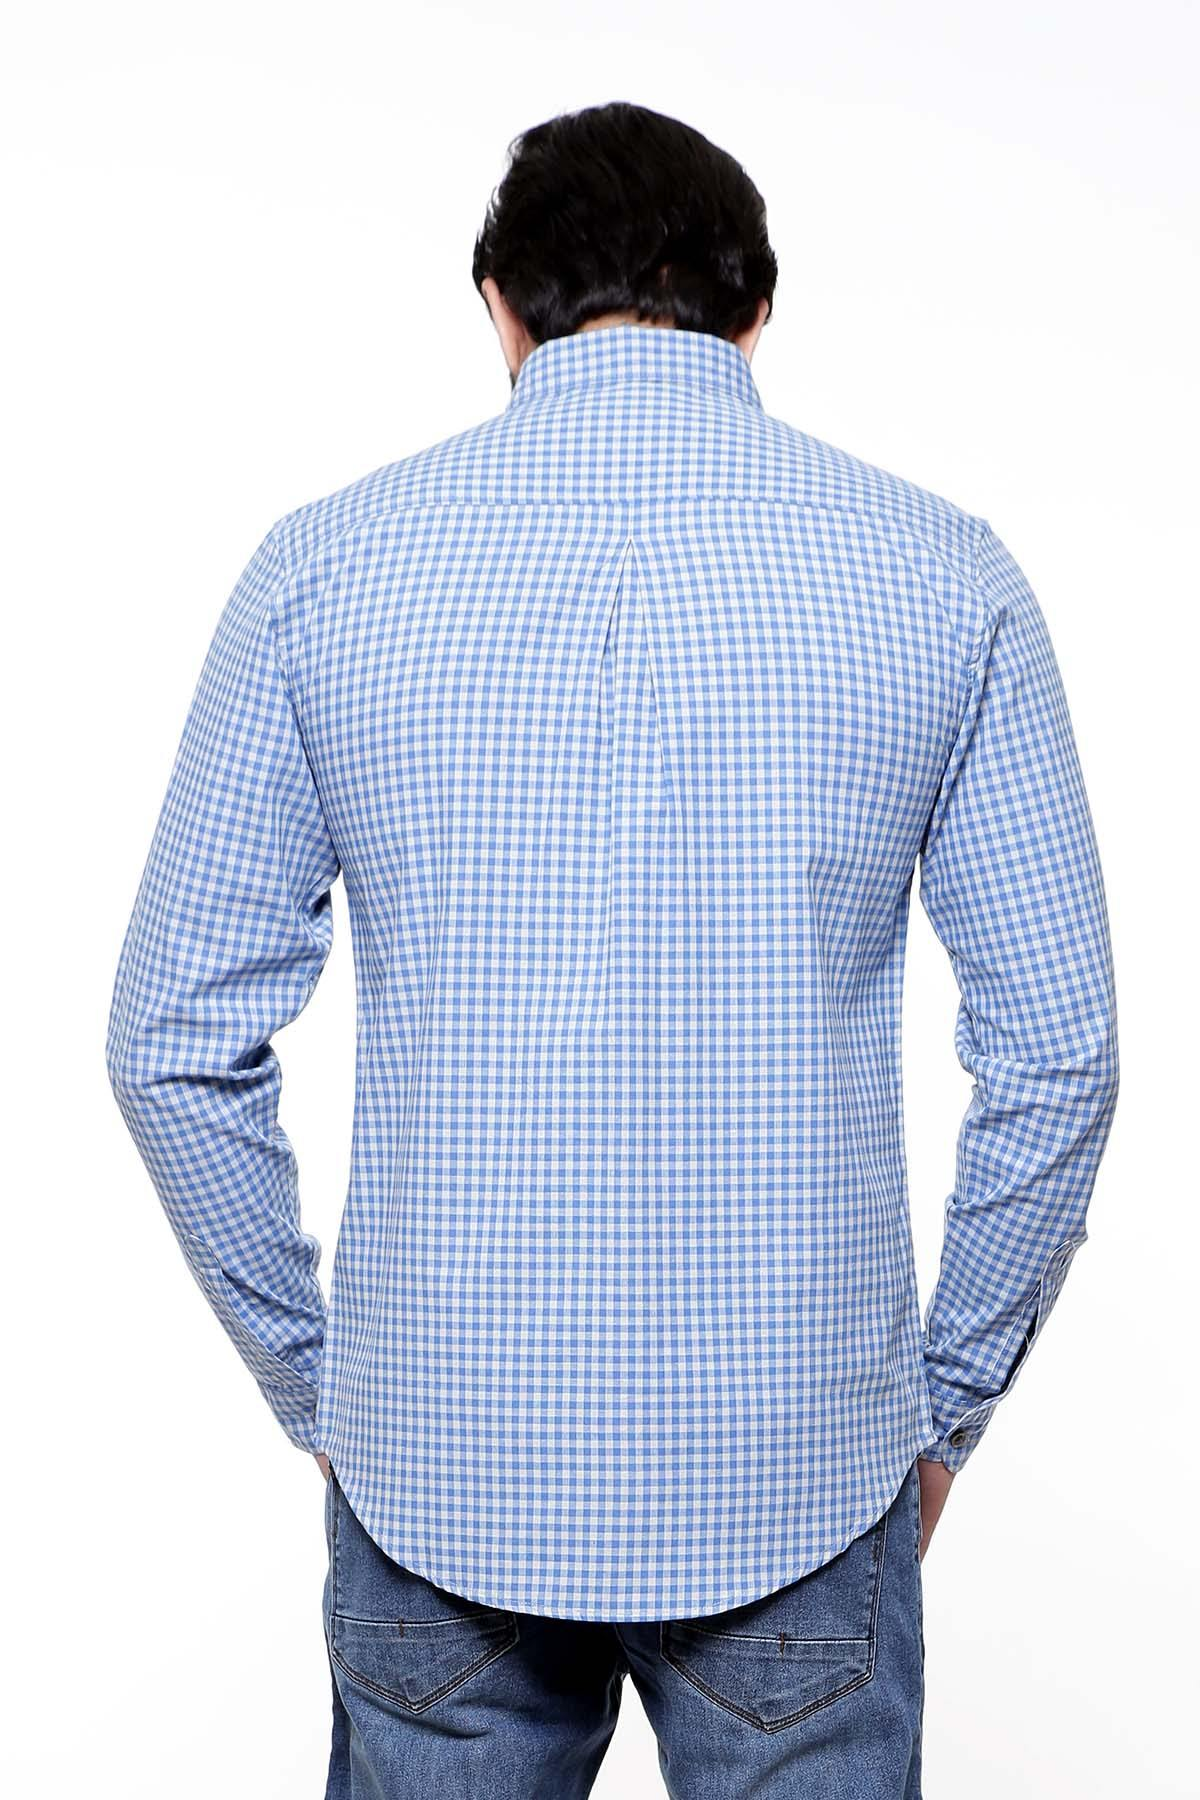 CASUAL SHIRT FULL SLEEVE BLUE GREY